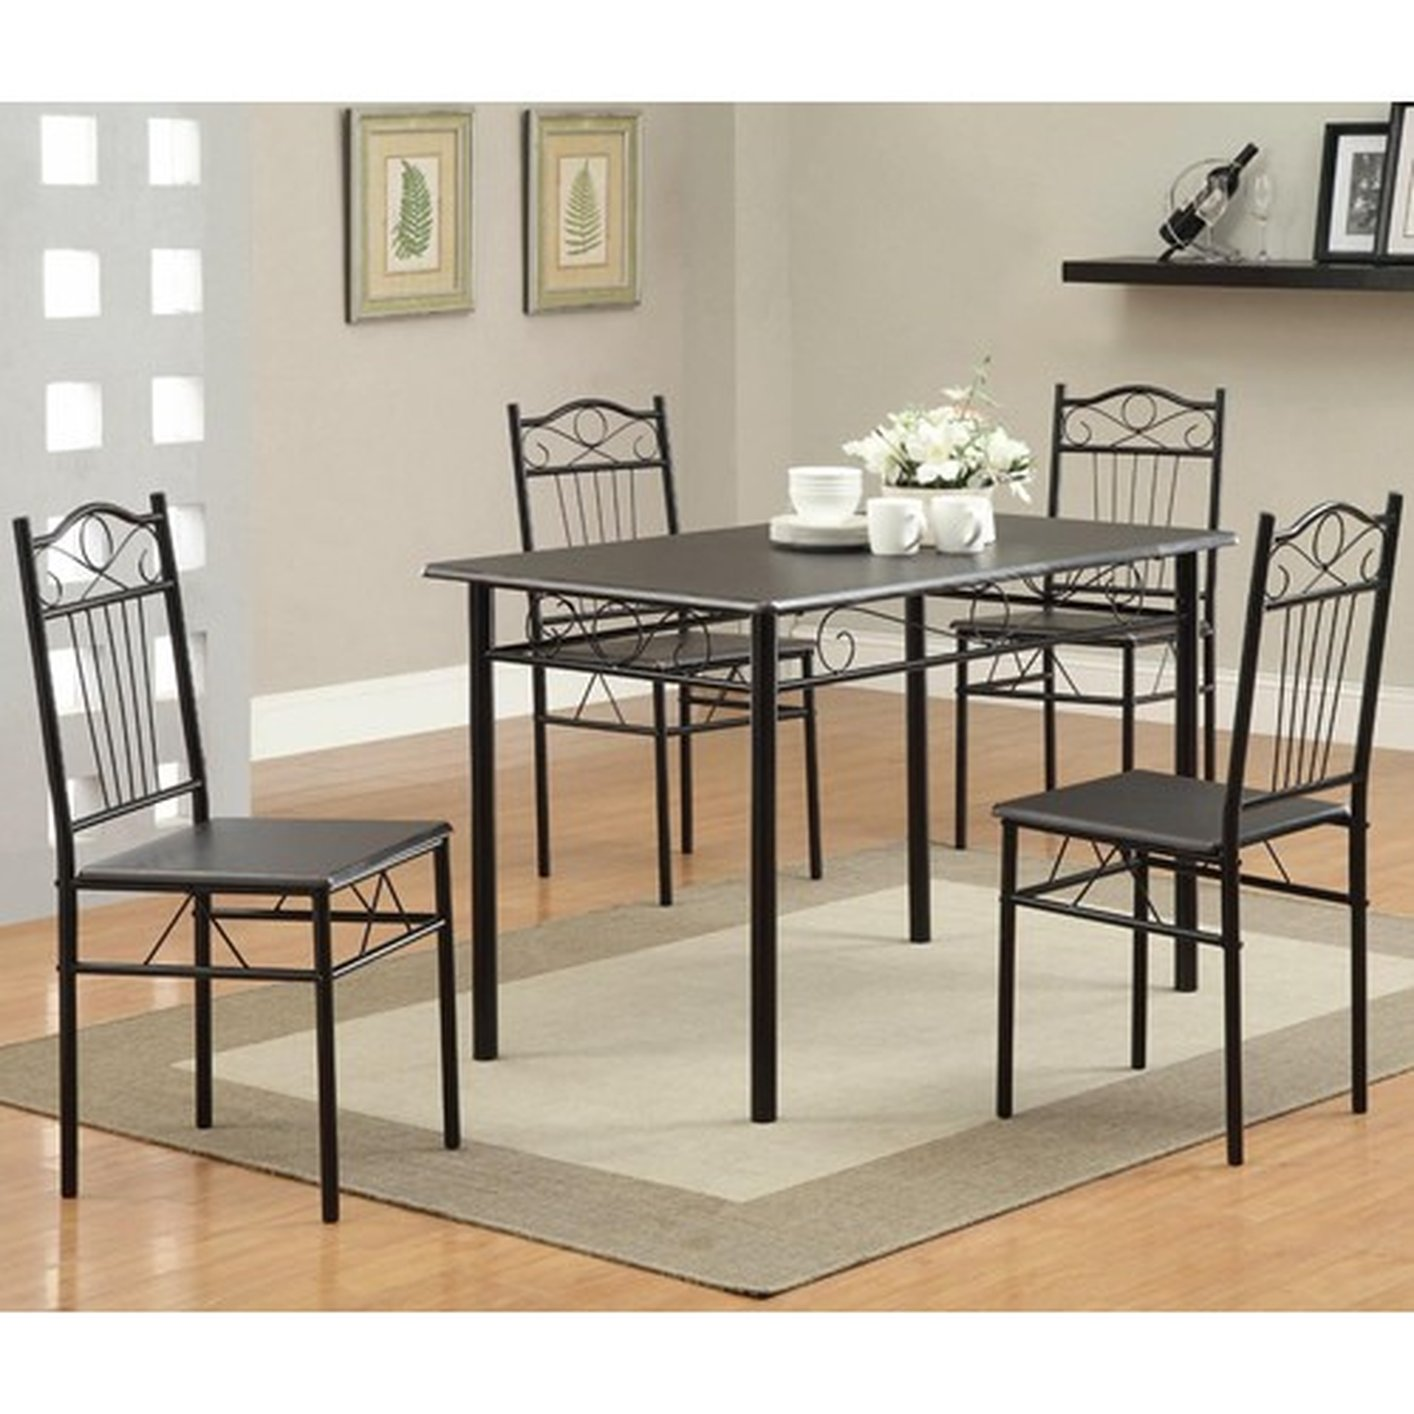 Great Black Metal Dining Table And Chair Set